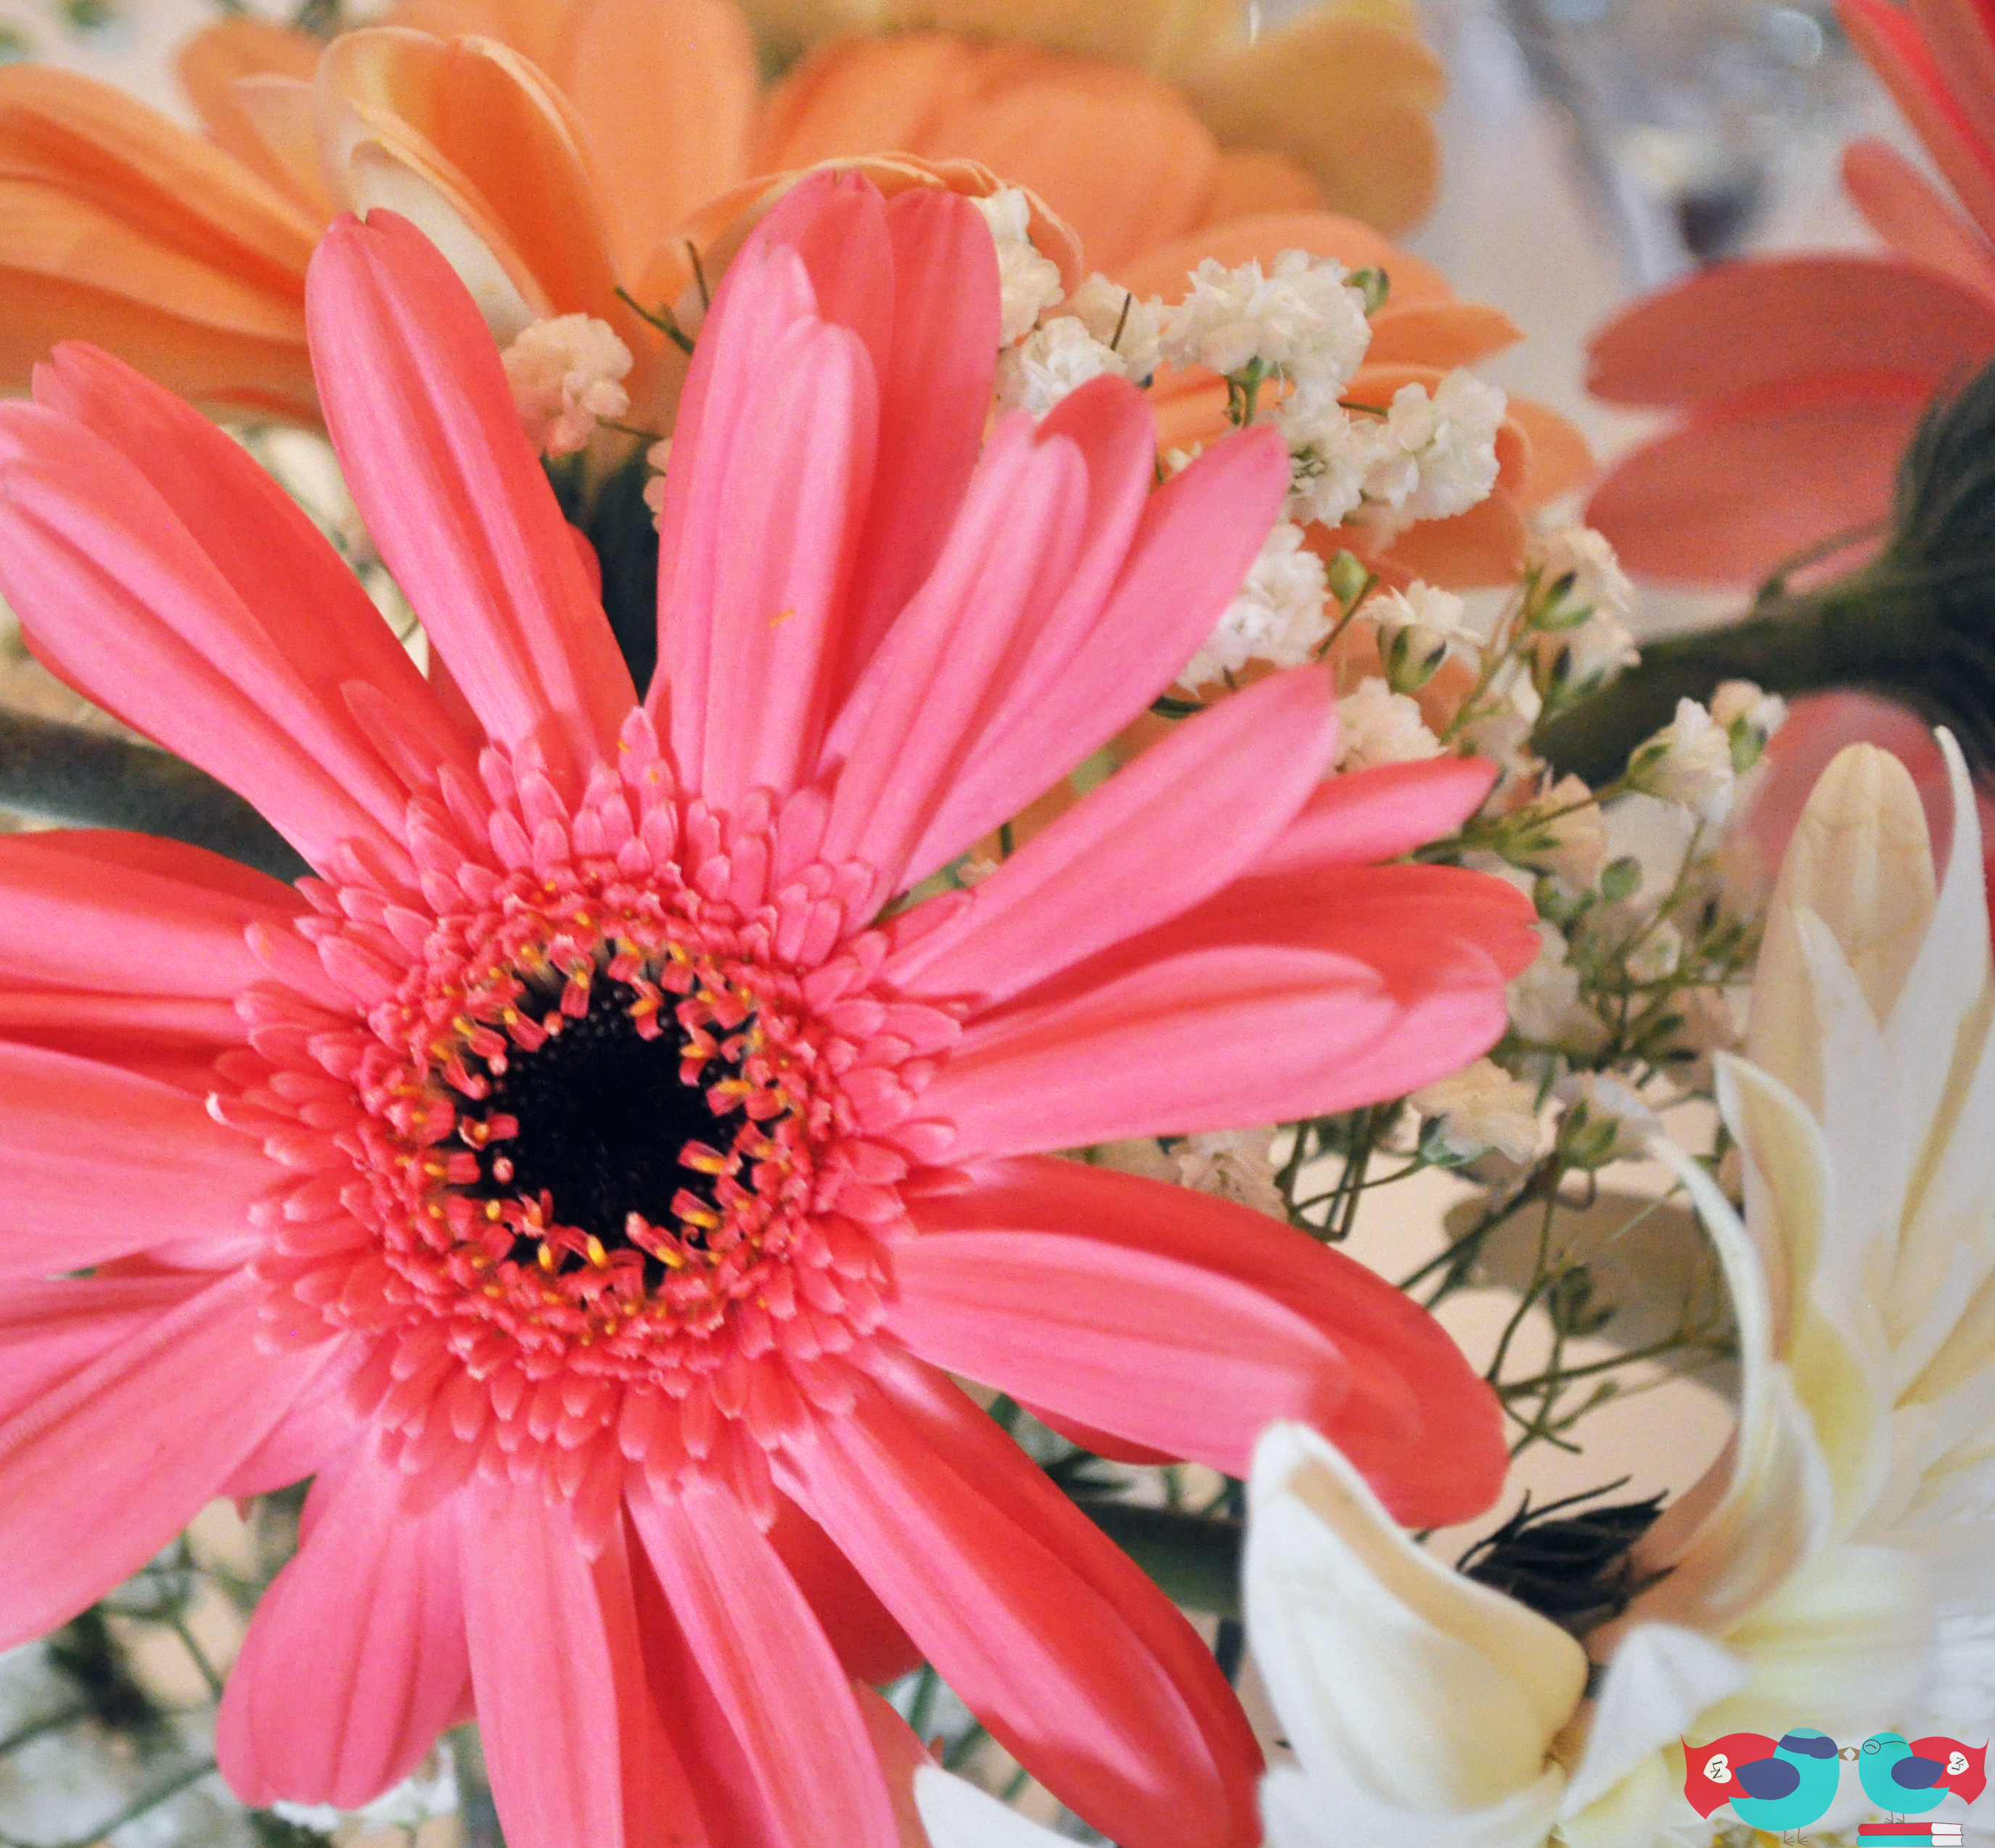 Diy Daisy Centerpieces At Lunch Reception Using Wholesale Flowers